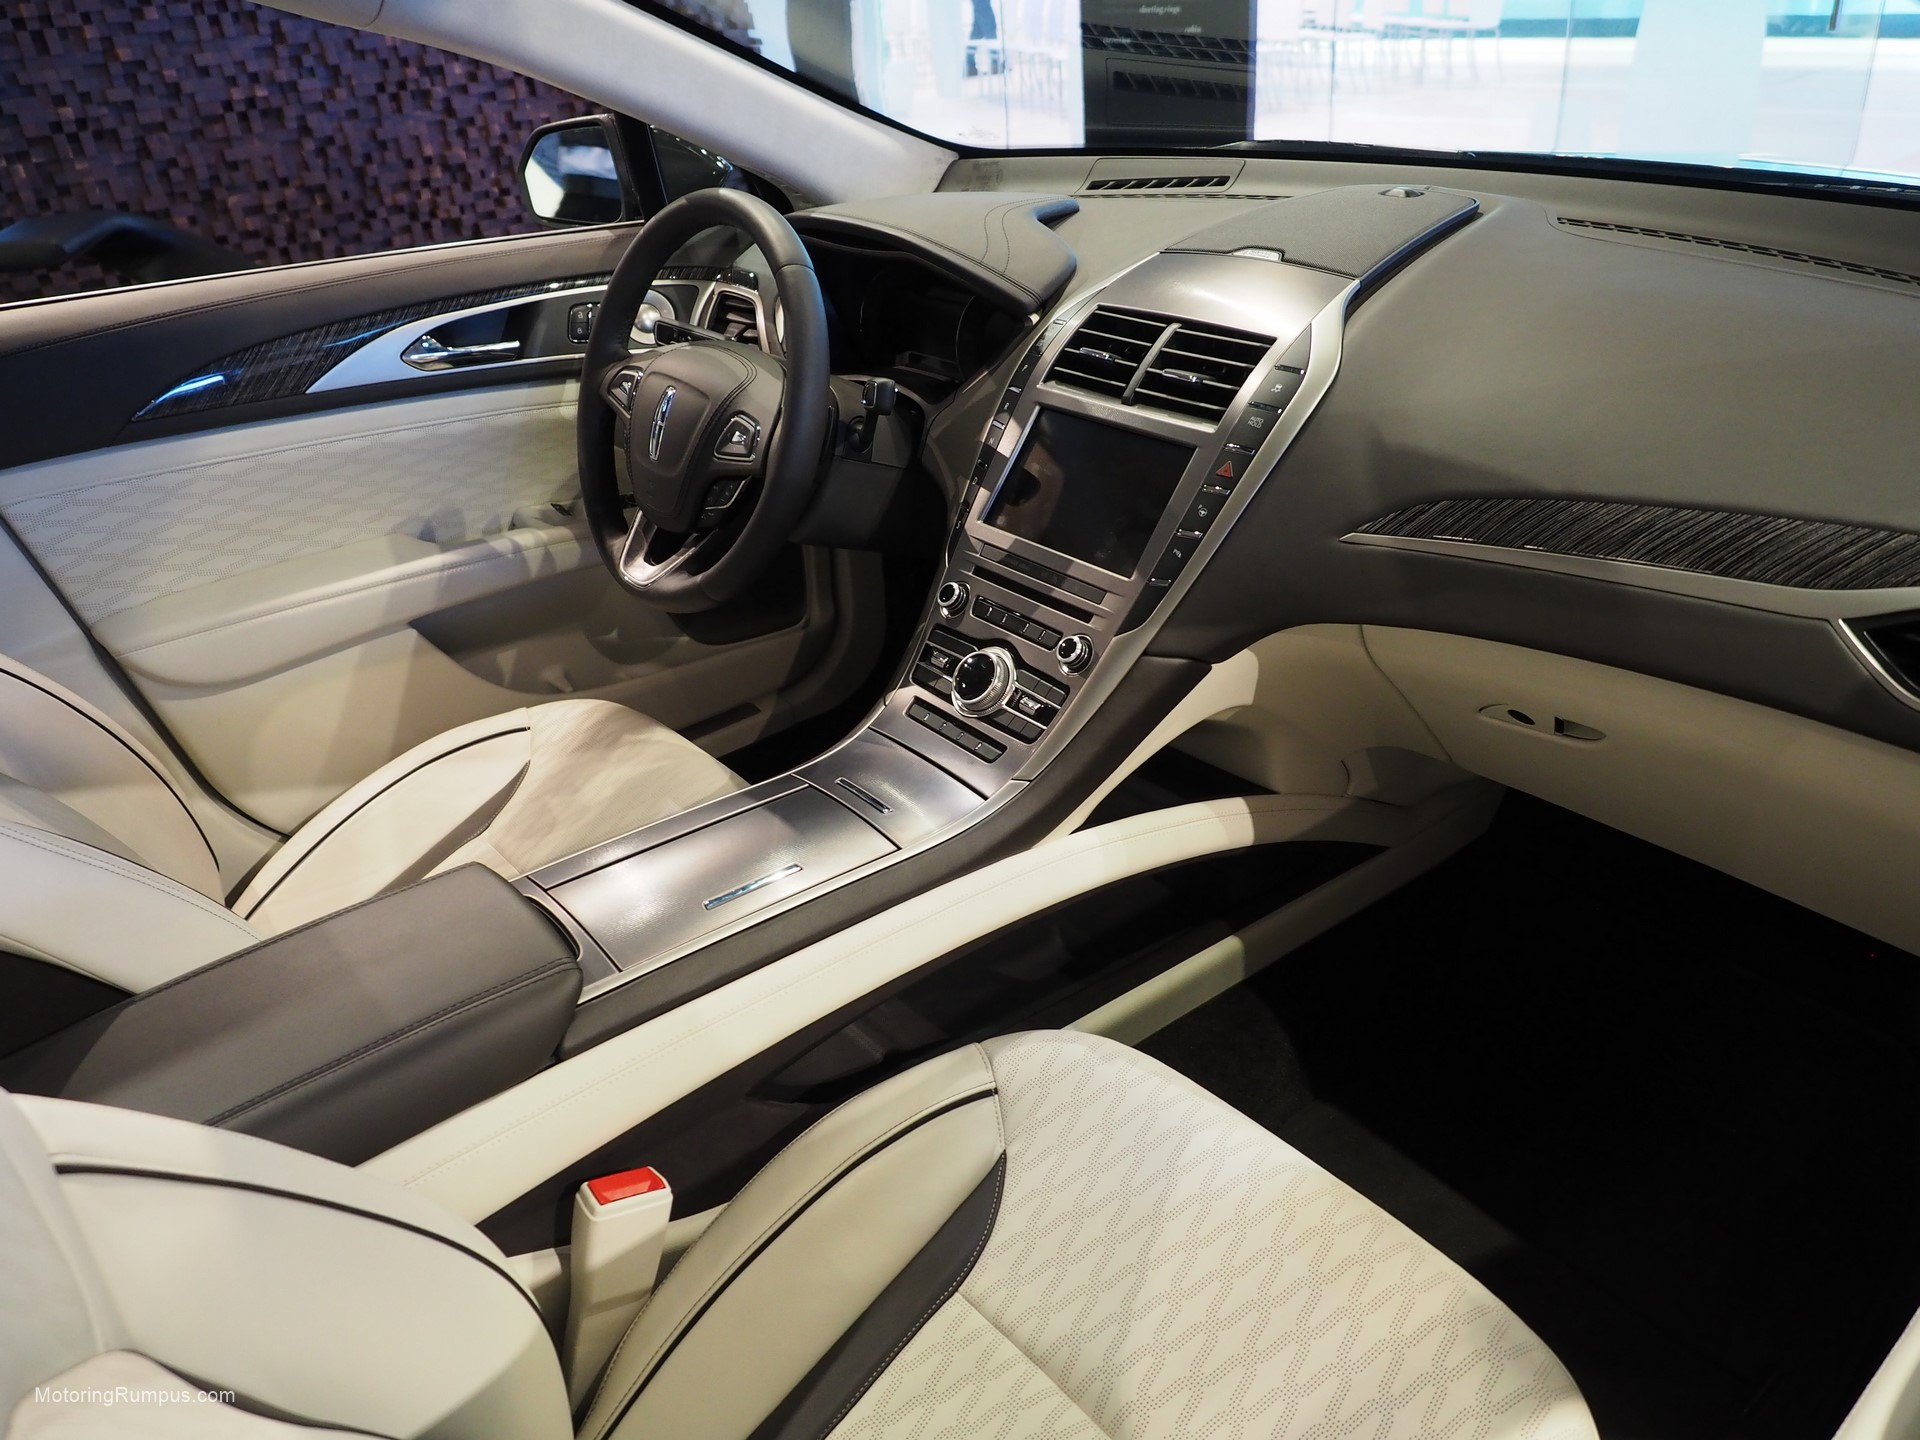 2016 Naias Lincoln Mkz Interior Motoring Rumpus